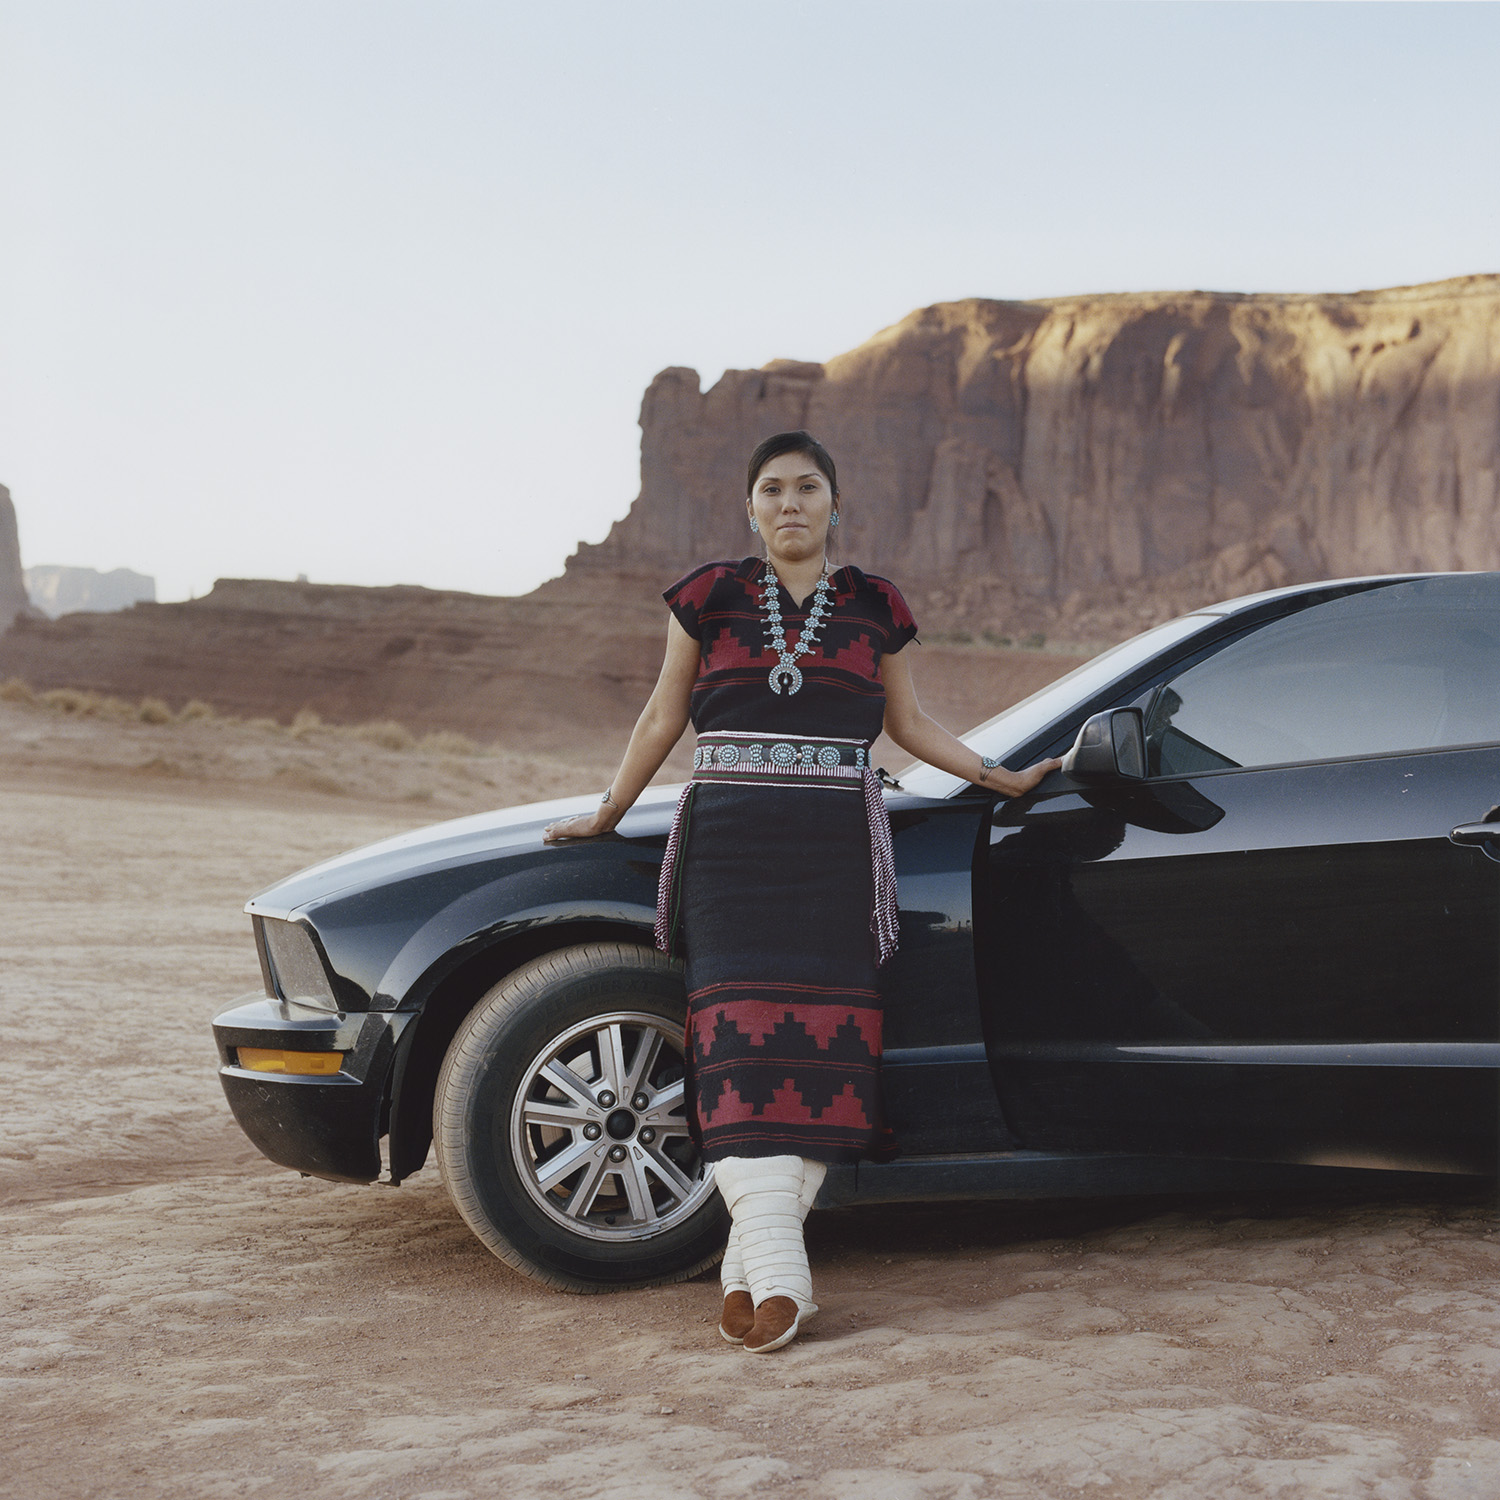 Everita and her Mustang ©Carlotta Cardana  A posed portrait of Evereta Thinn, 30 at the time the picture was taken. She works as an administrator at School District on the Navajo Nation and aspires to start a language and cultural immersion school for the Diné (Navajo) people. She is photographed in Monument Valley, where part of her family lives, with her Ford Mustang. The car was given to her as a present by her brother, who passed away shortly afterward; it became her most cherished possession and a way of honoring her brother's memory